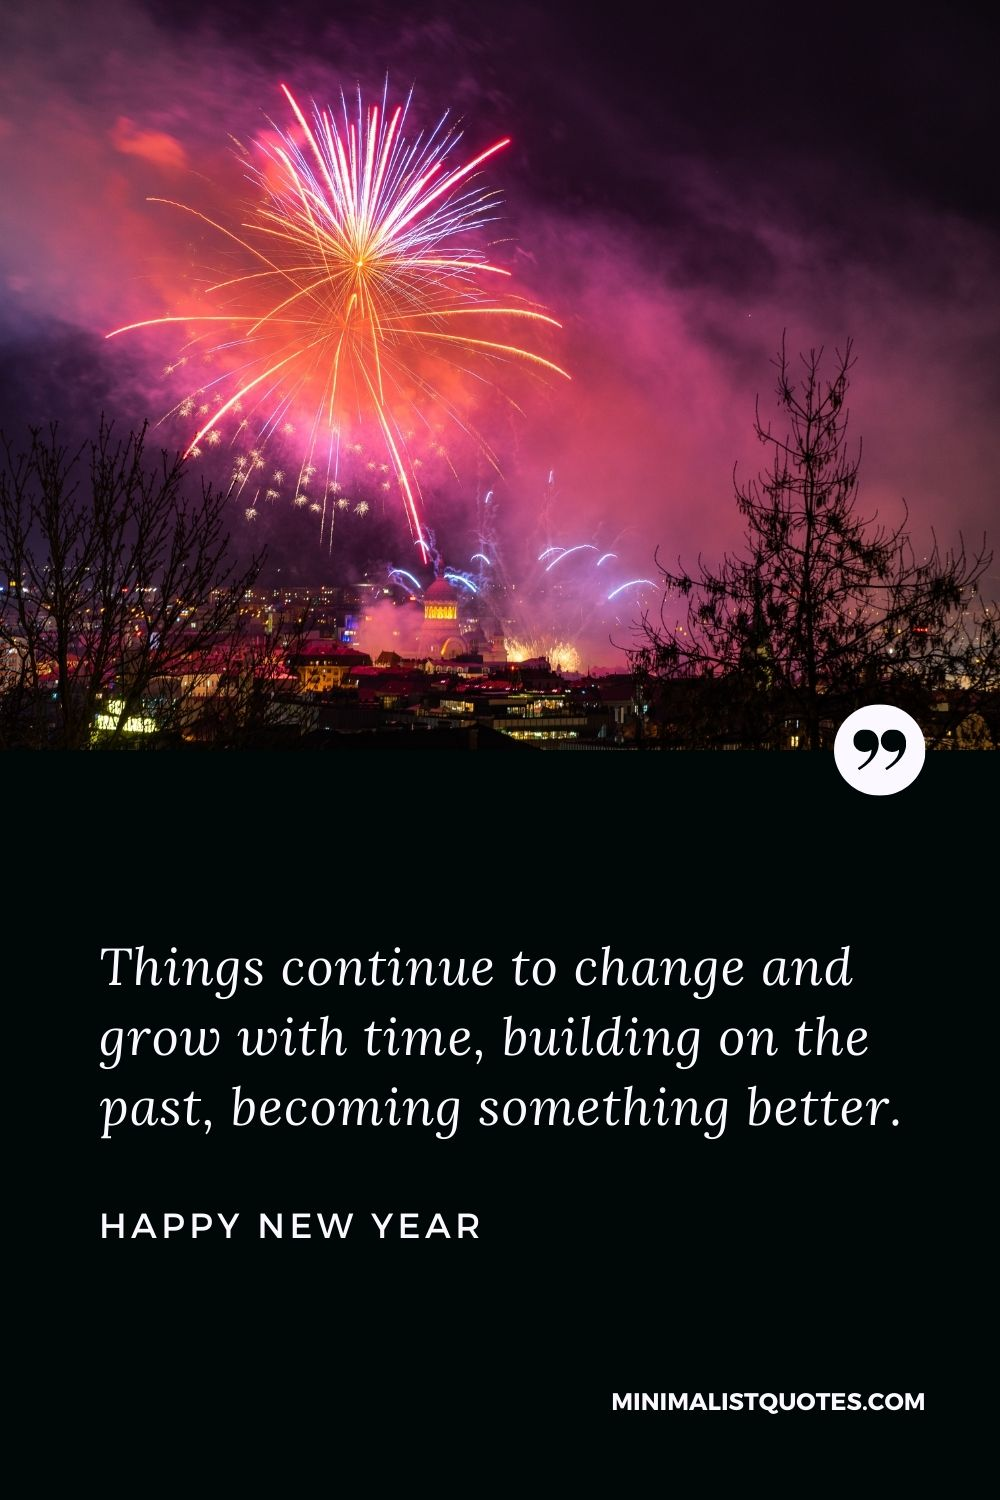 New Year Wish - Things continue to change and grow with time, building on the past, becoming something better.